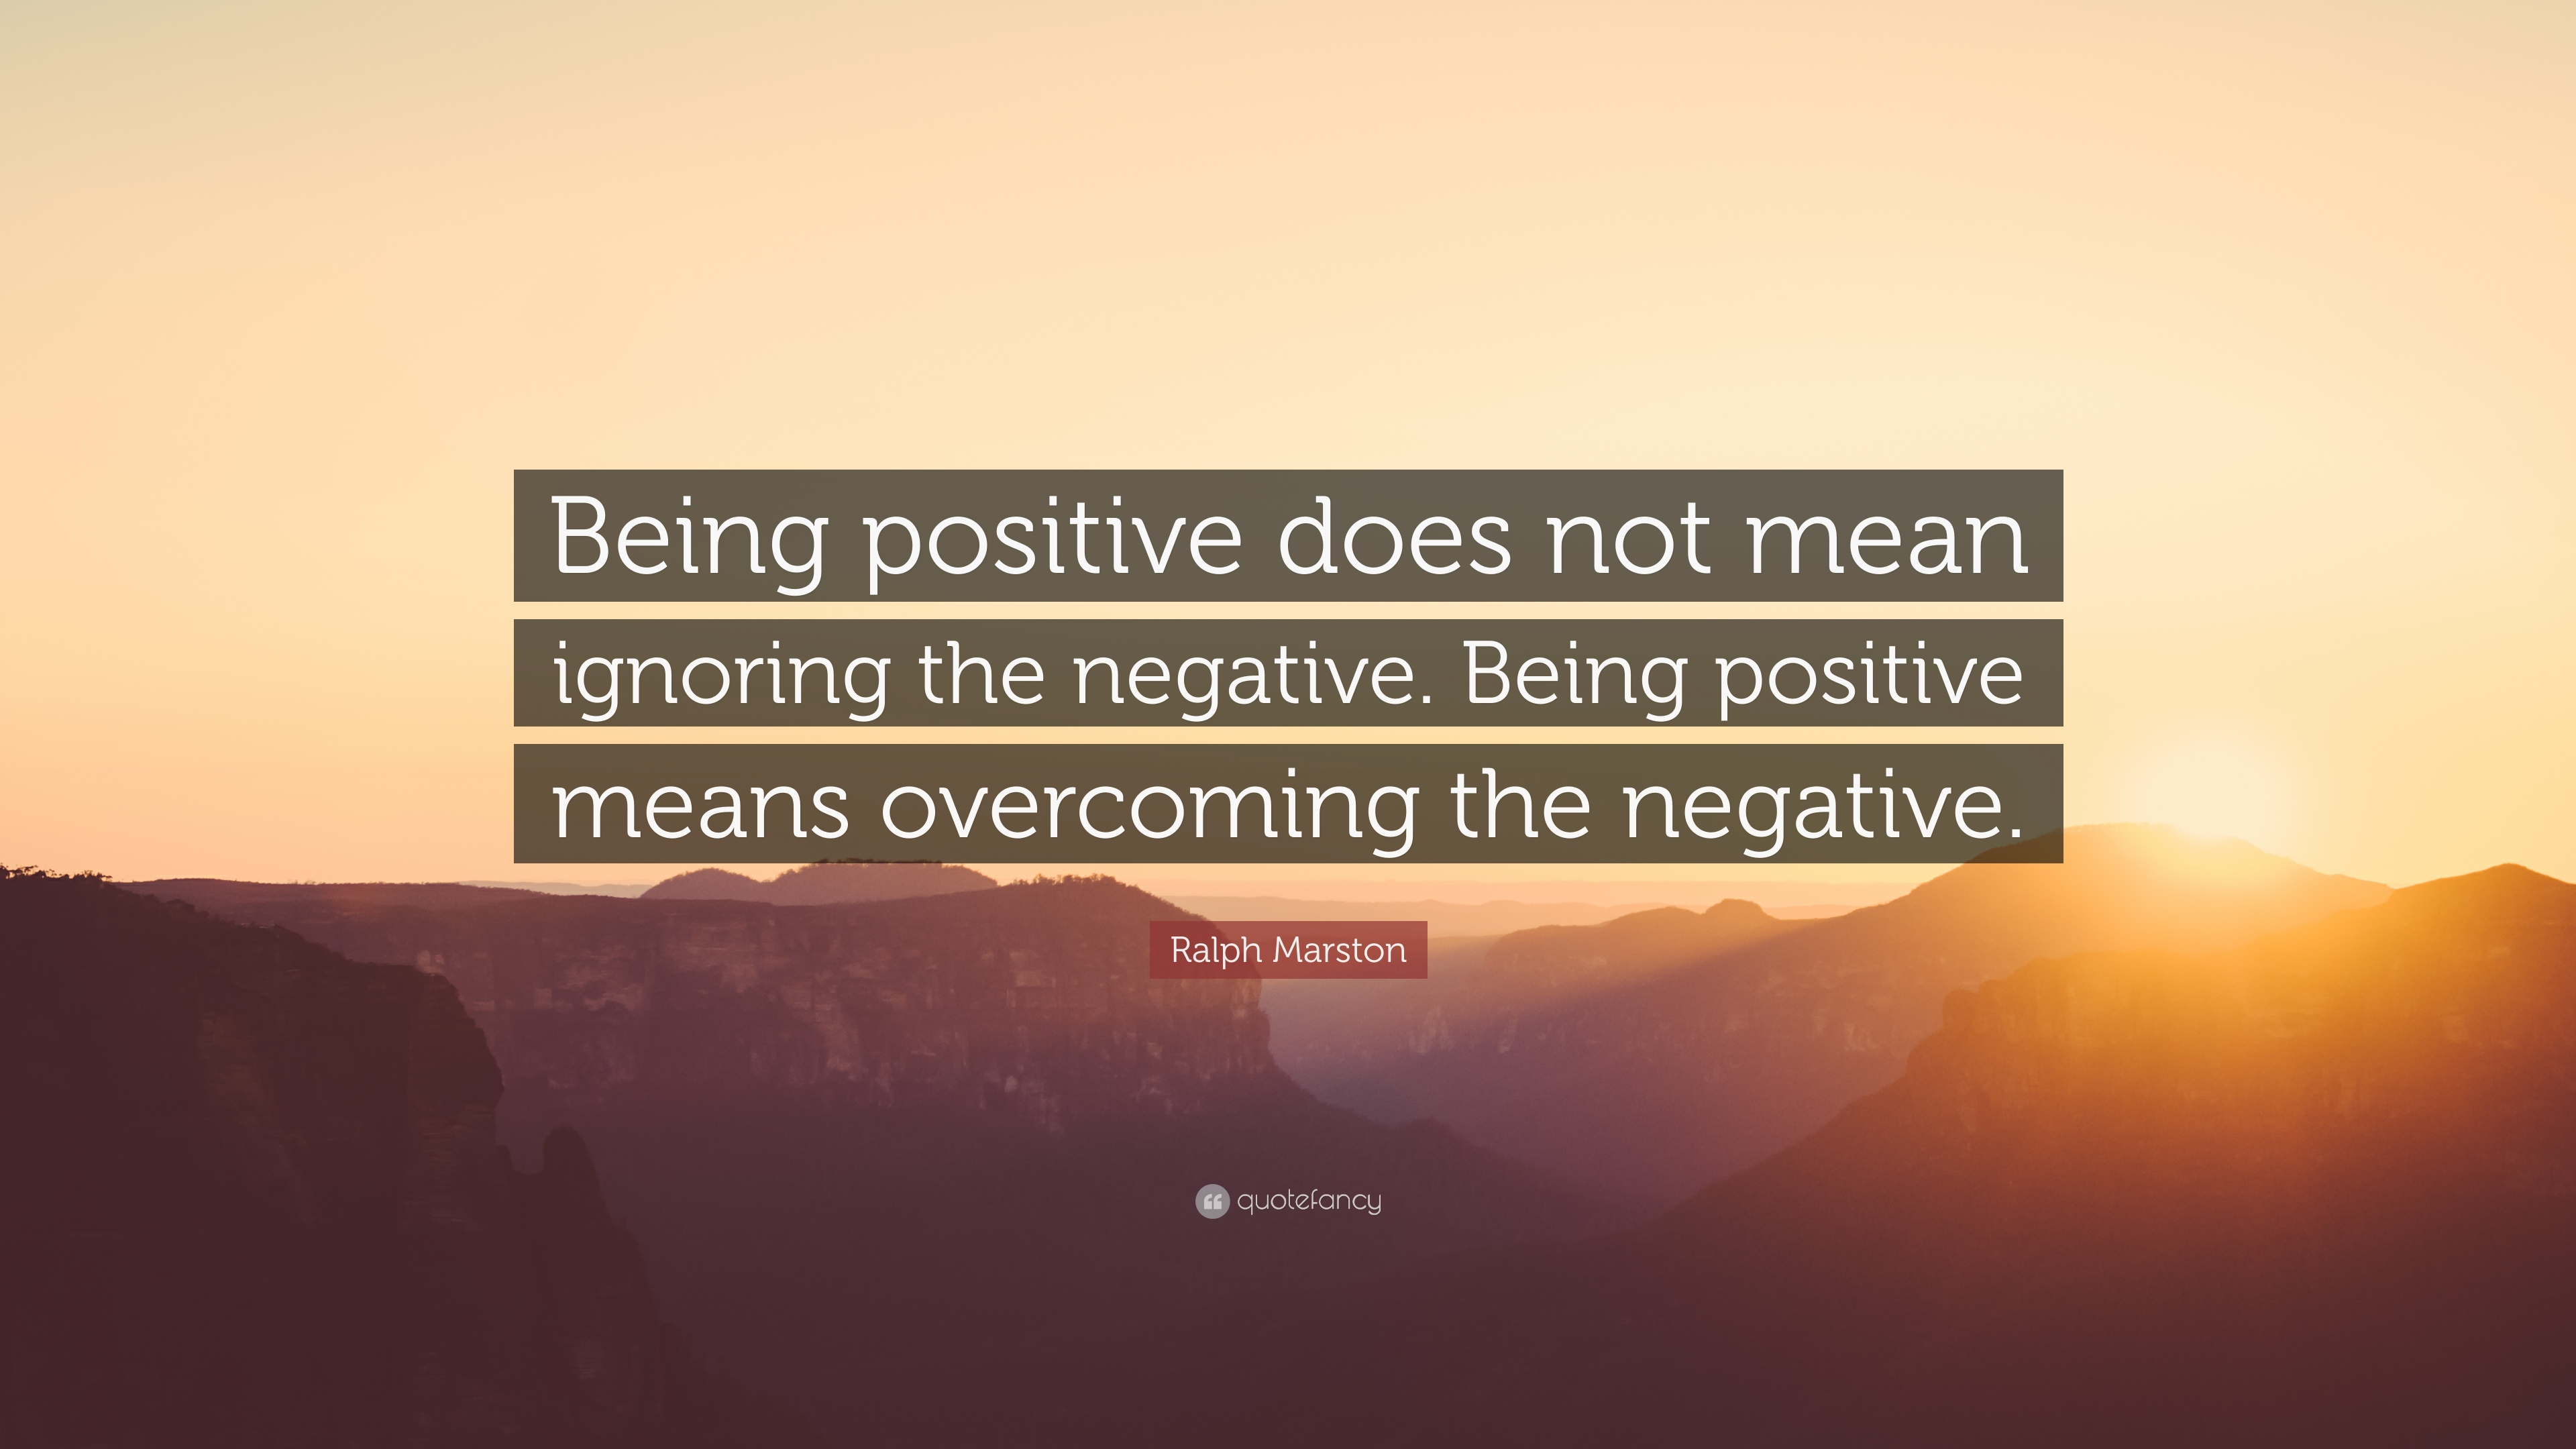 Quotes About Being Positive | Ralph Marston Quote Being Positive Does Not Mean Ignoring The